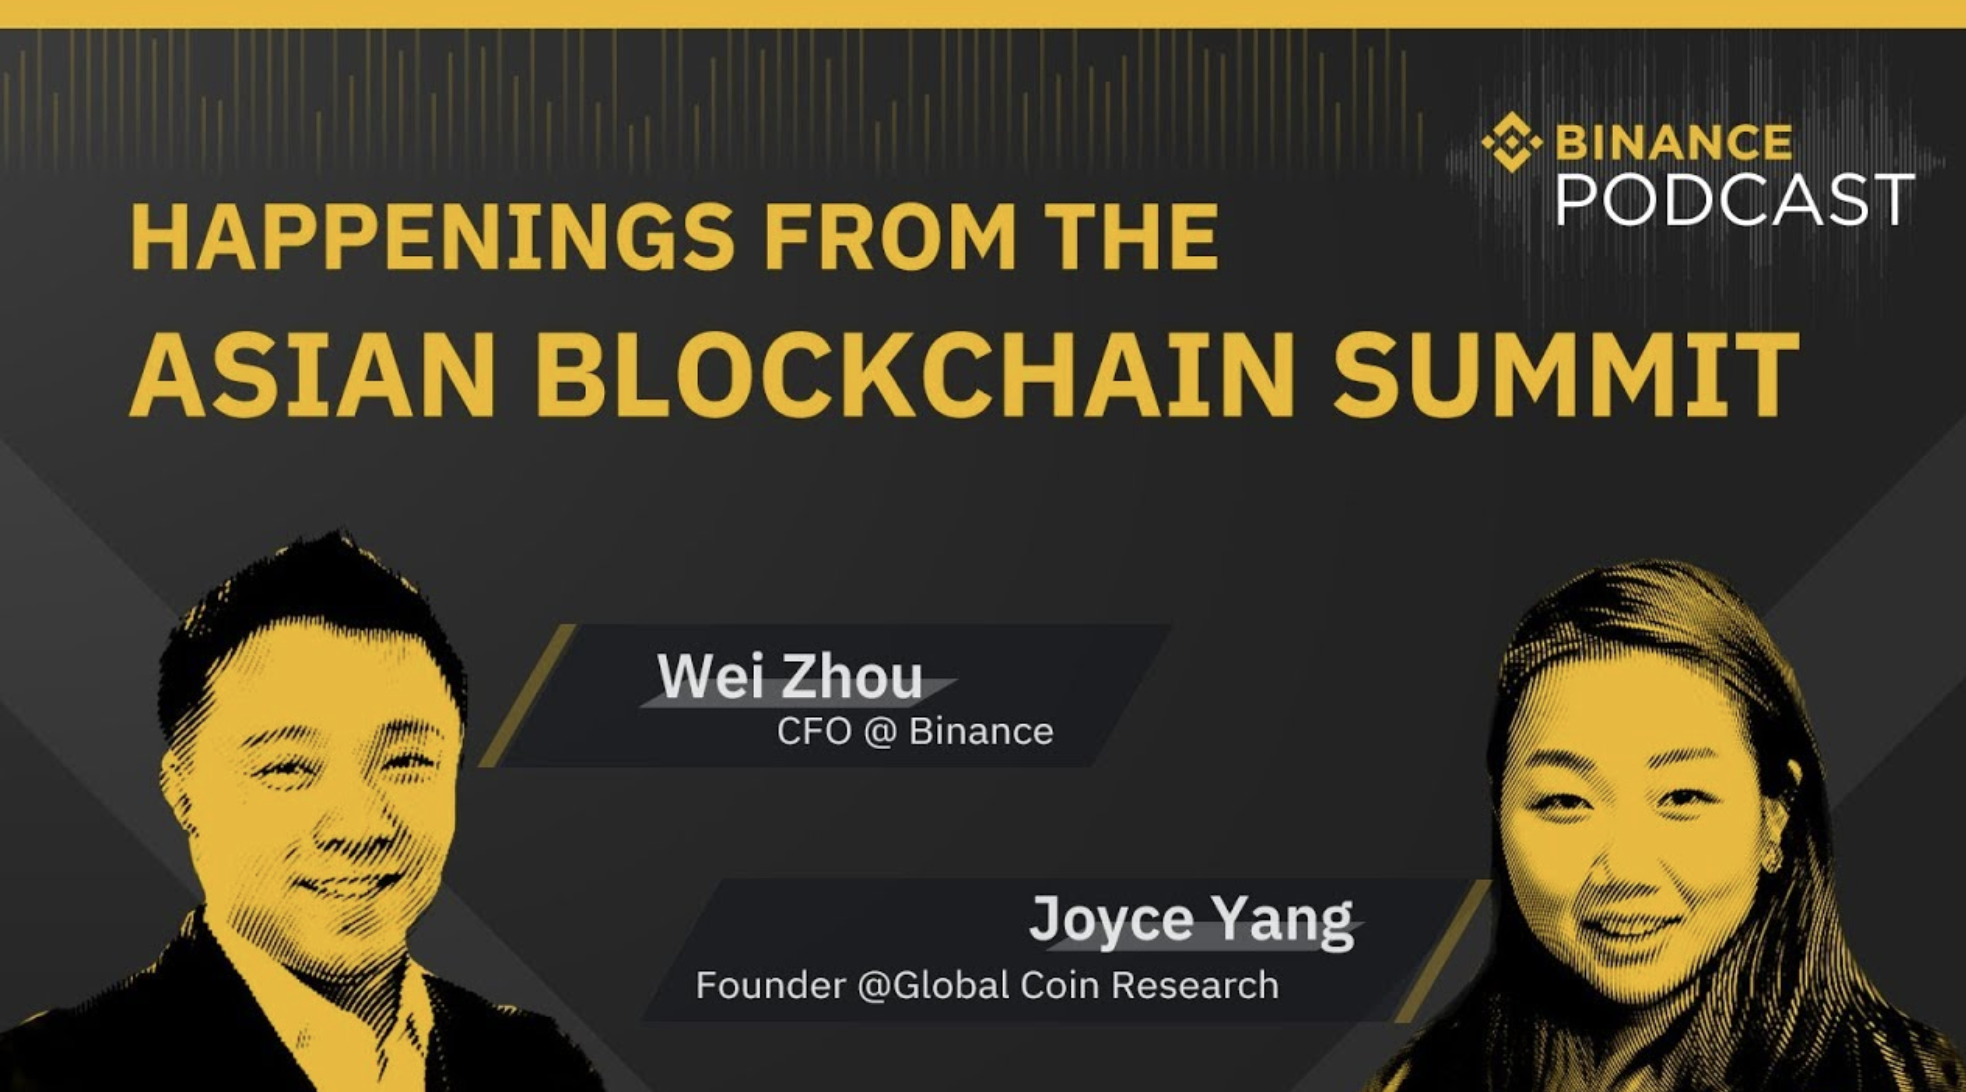 With CFO of Binance Wei Zhou on the Happenings from the